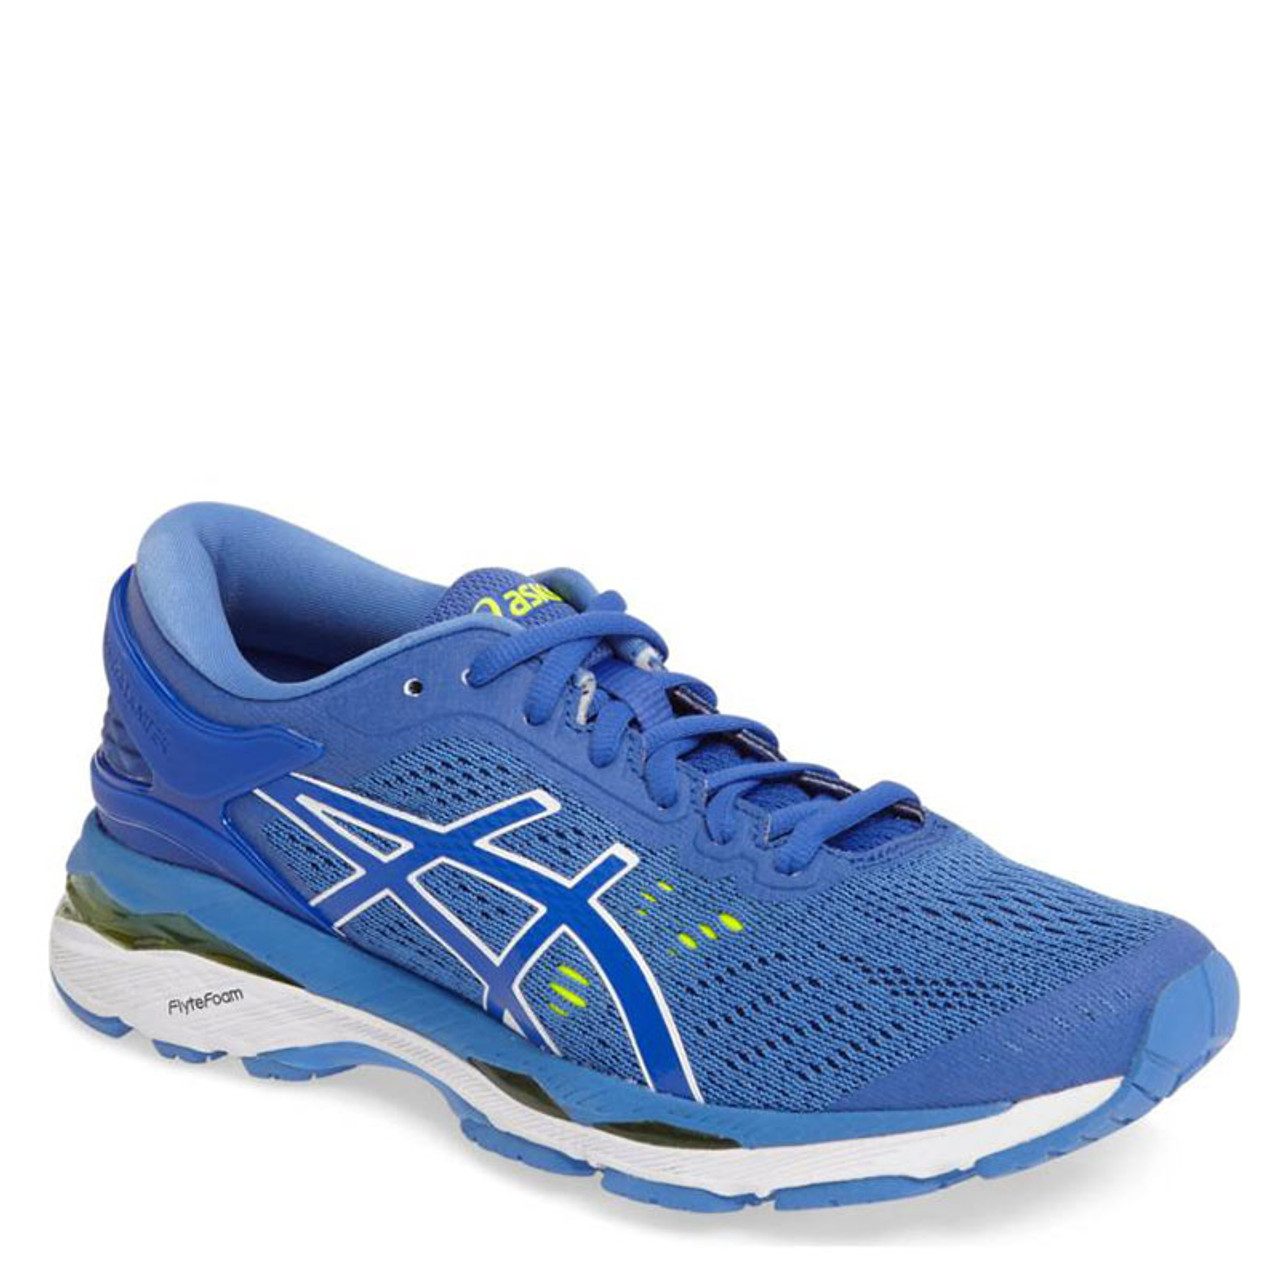 asics gel kayano 24 womens running shoes